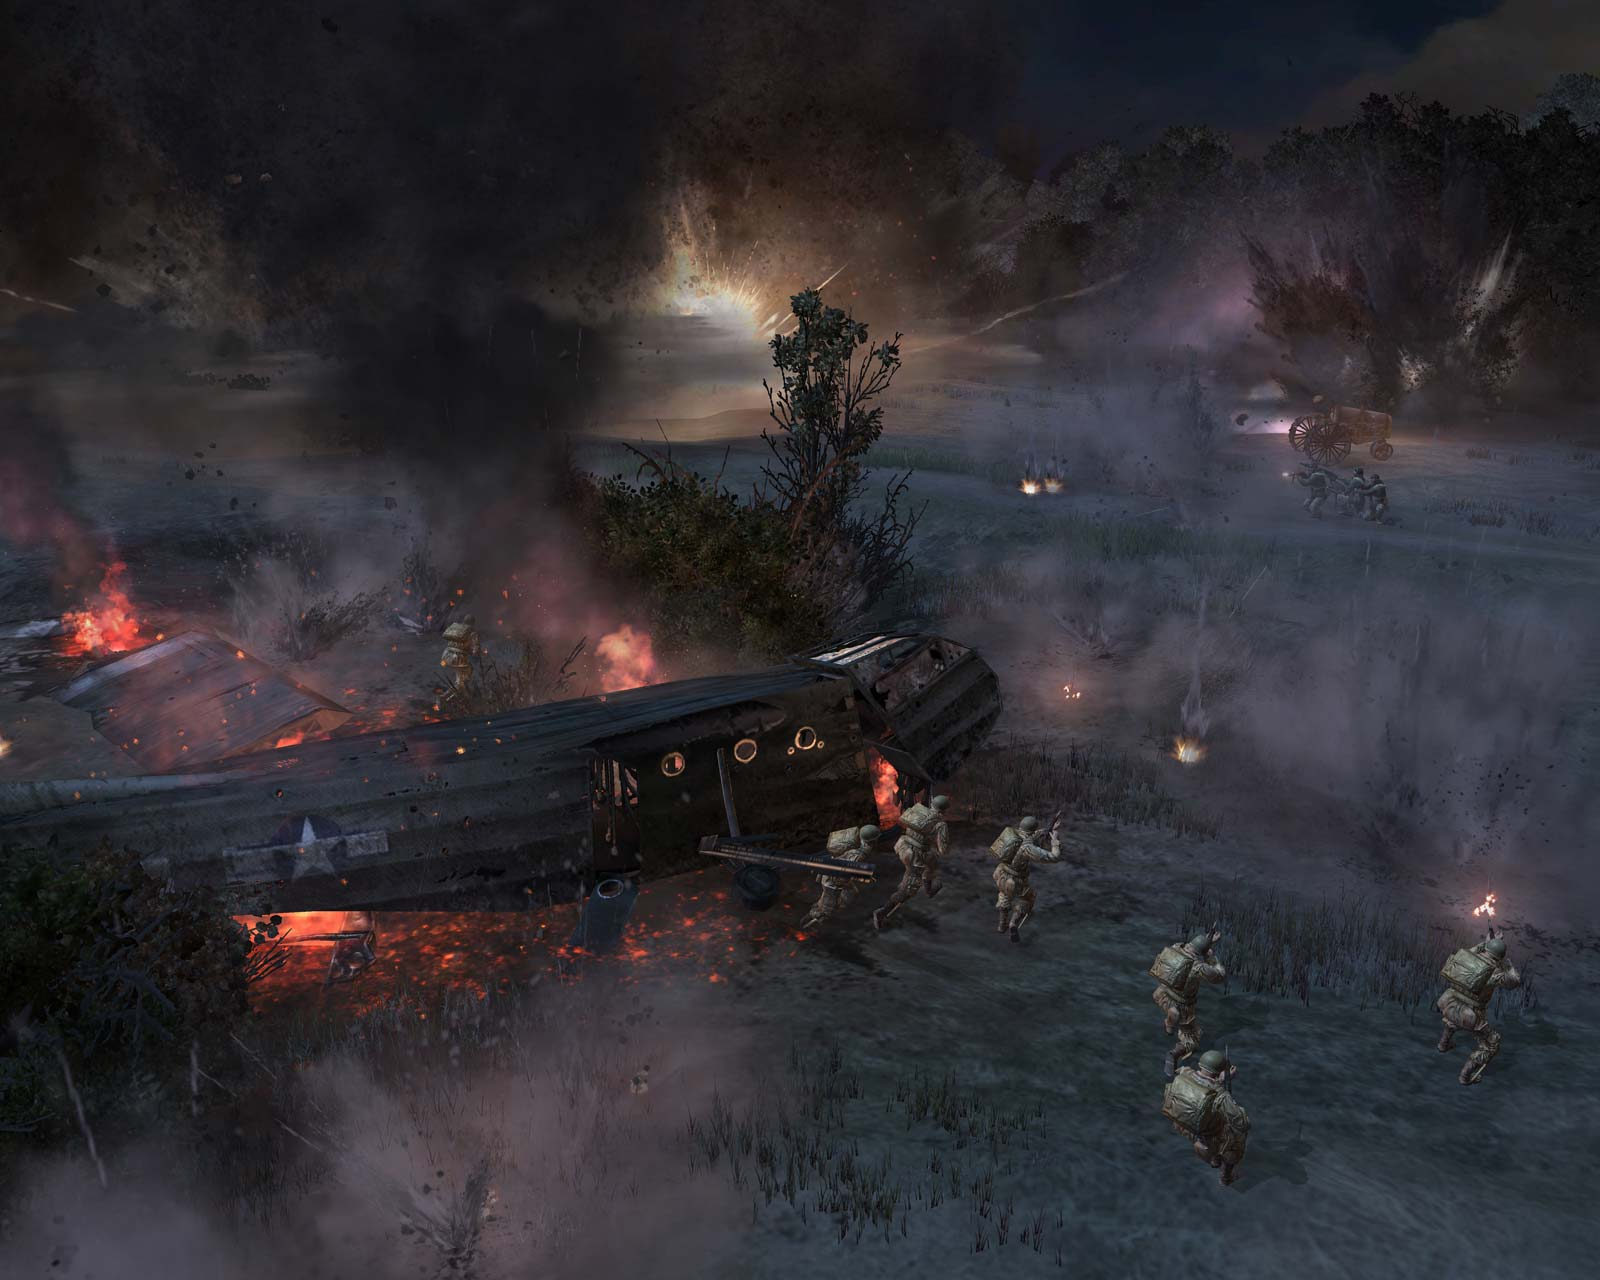 Company of heroes patch 1. 0 to 1. 4 download קודי ישראל kodi israel.